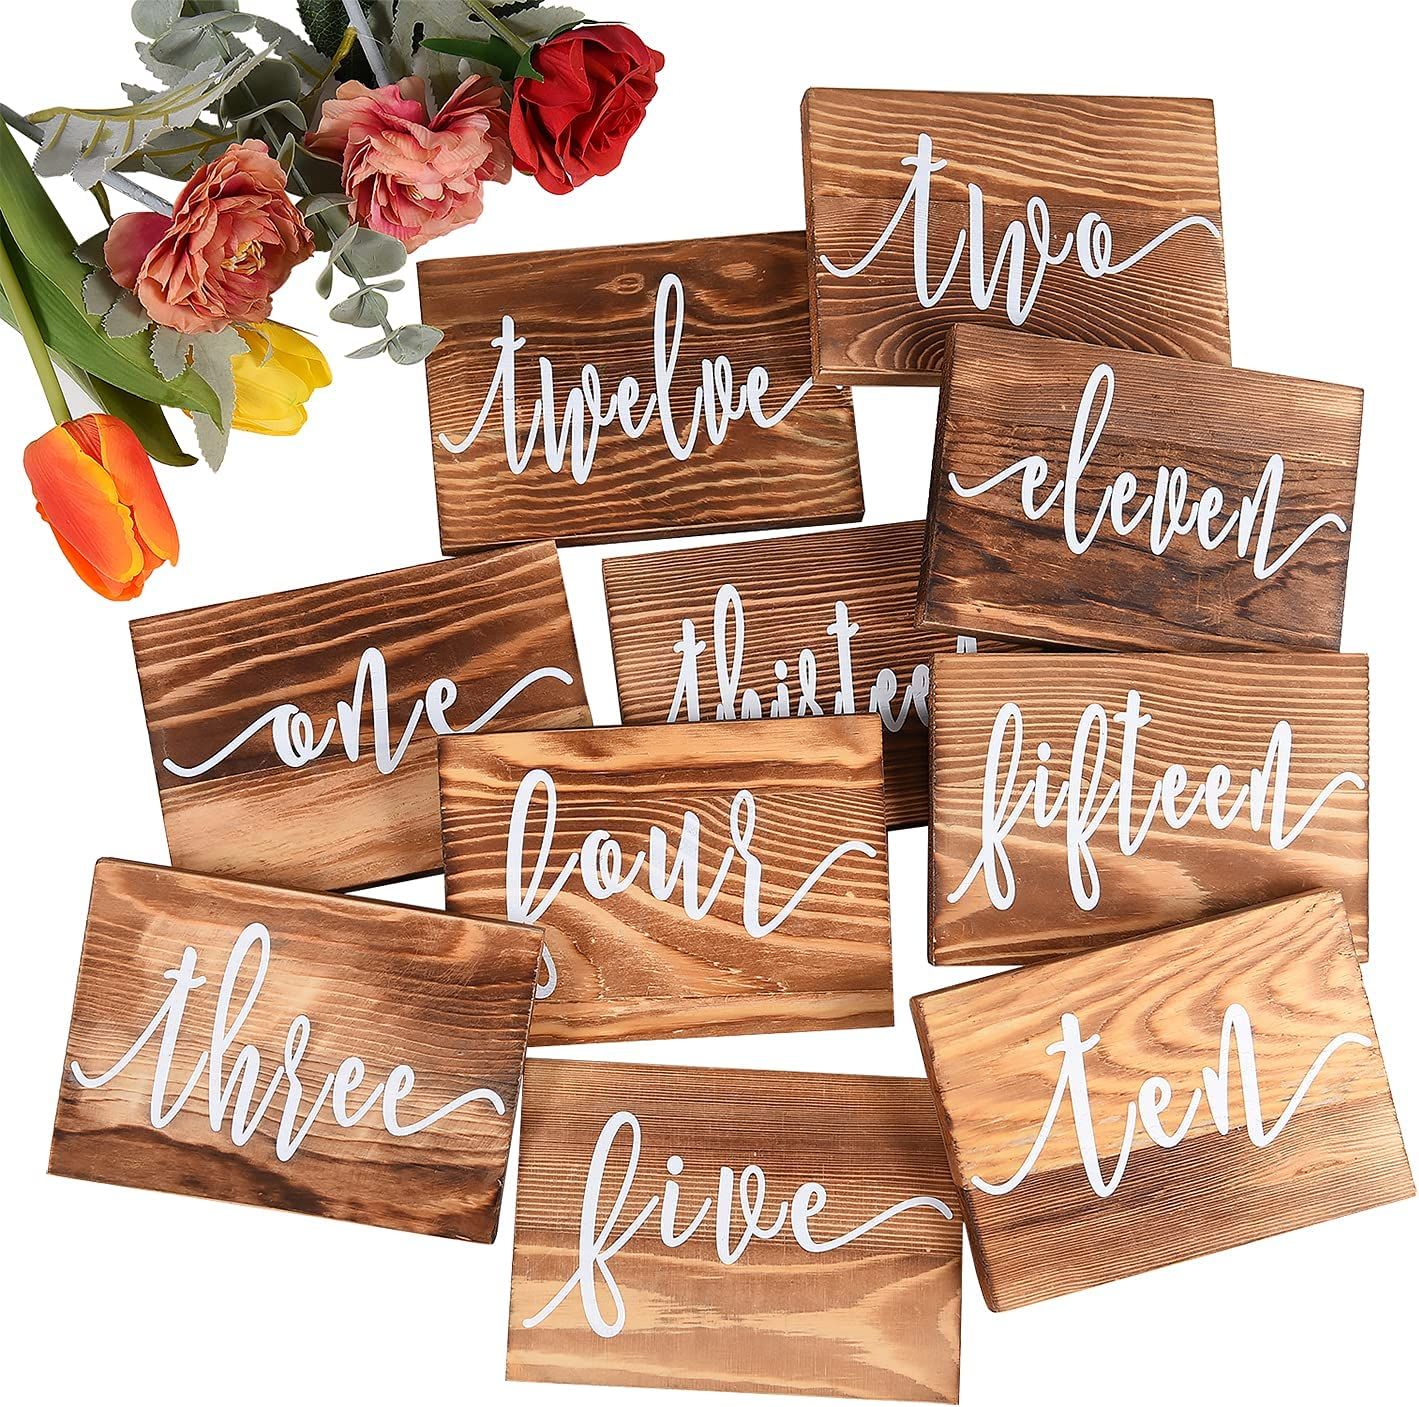 BasedFloor Rustic Wooden Wedding Table Numbers-Country Wedding Table Decoration,Double Sides Wood Table Signs for Reception Decor,Restaurant, Celebration,Birthday Party, 5.5